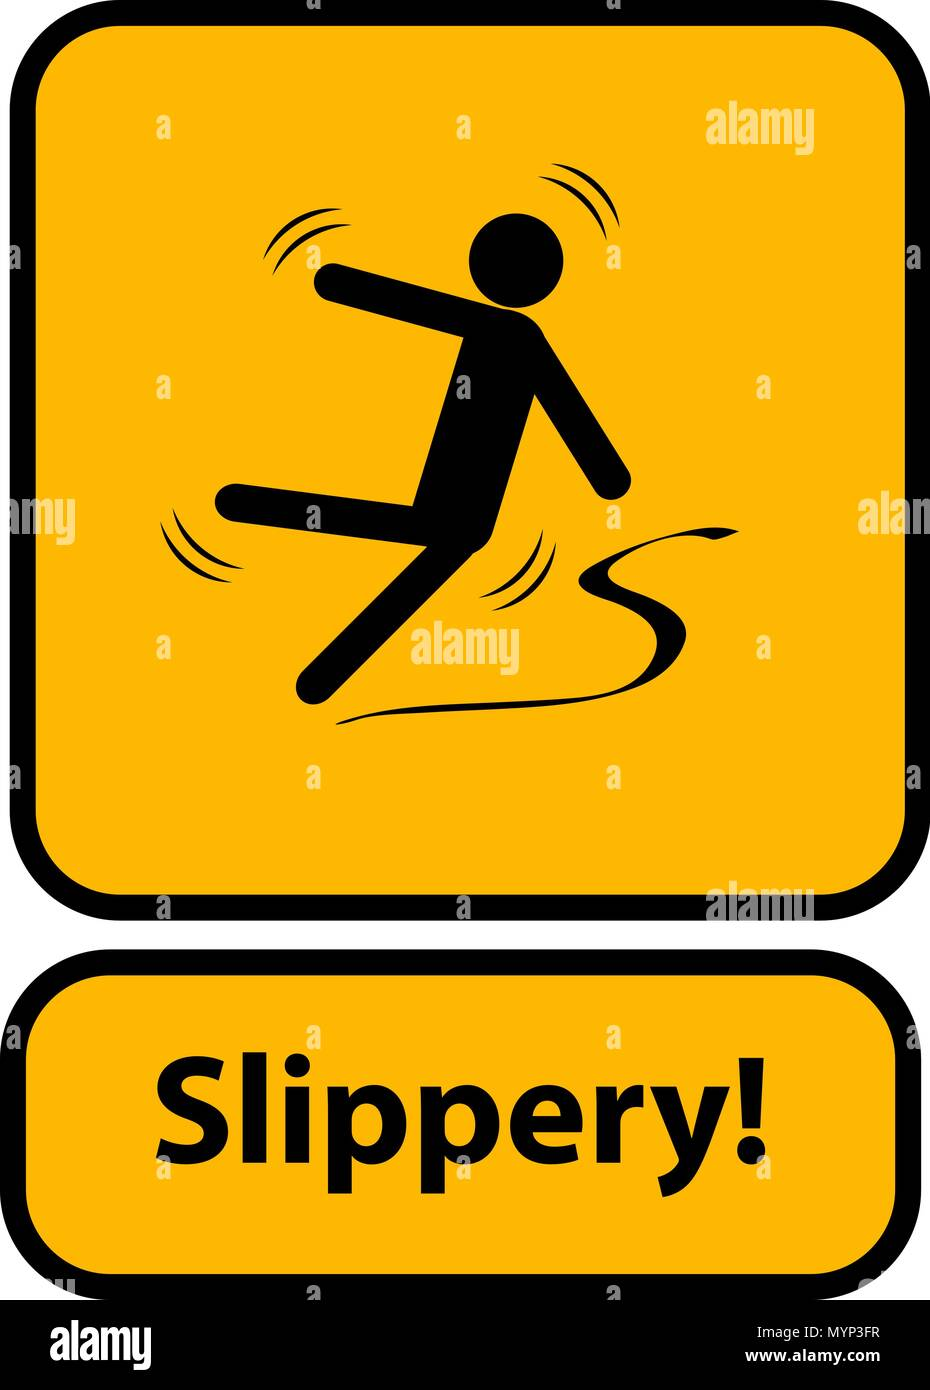 Slippery warning yellow sign - Stock Vector